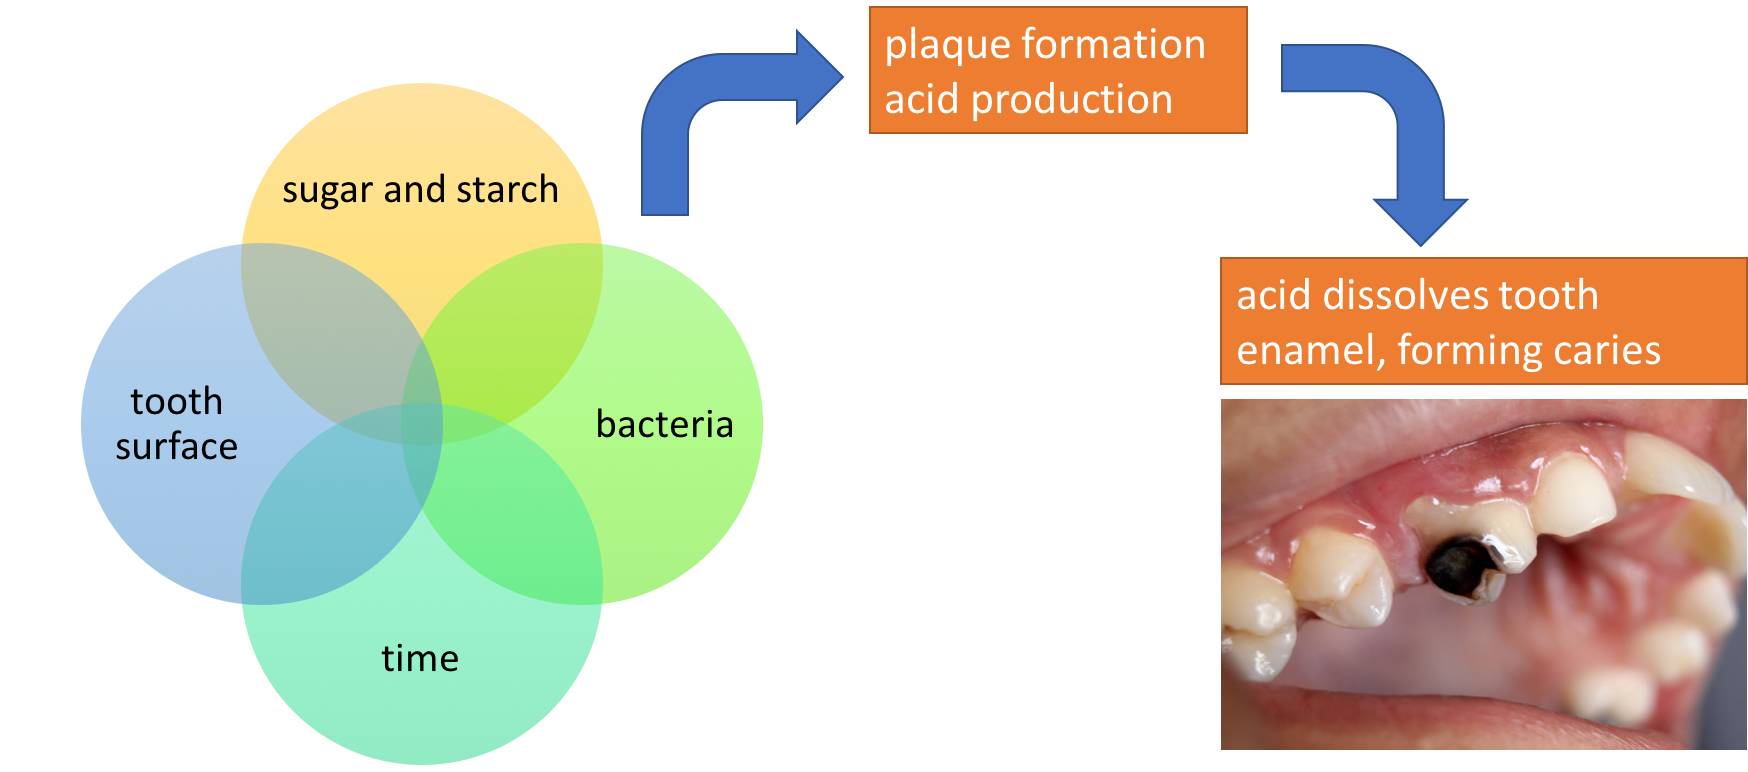 "The image is a schematic. On the left, it shows a Venn diagram with four circles coming together, with the words ""tooth surface,"" ""sugar and starch,"" ""bacteria,"" and ""time."" When these 4 factors are present, the schematic shows that it results in plaque formation and acid production. This then leads to acid dissolving tooth enamel, forming dental caries. A photo shows a tooth with a severe cavity, with half of the tooth blackened."